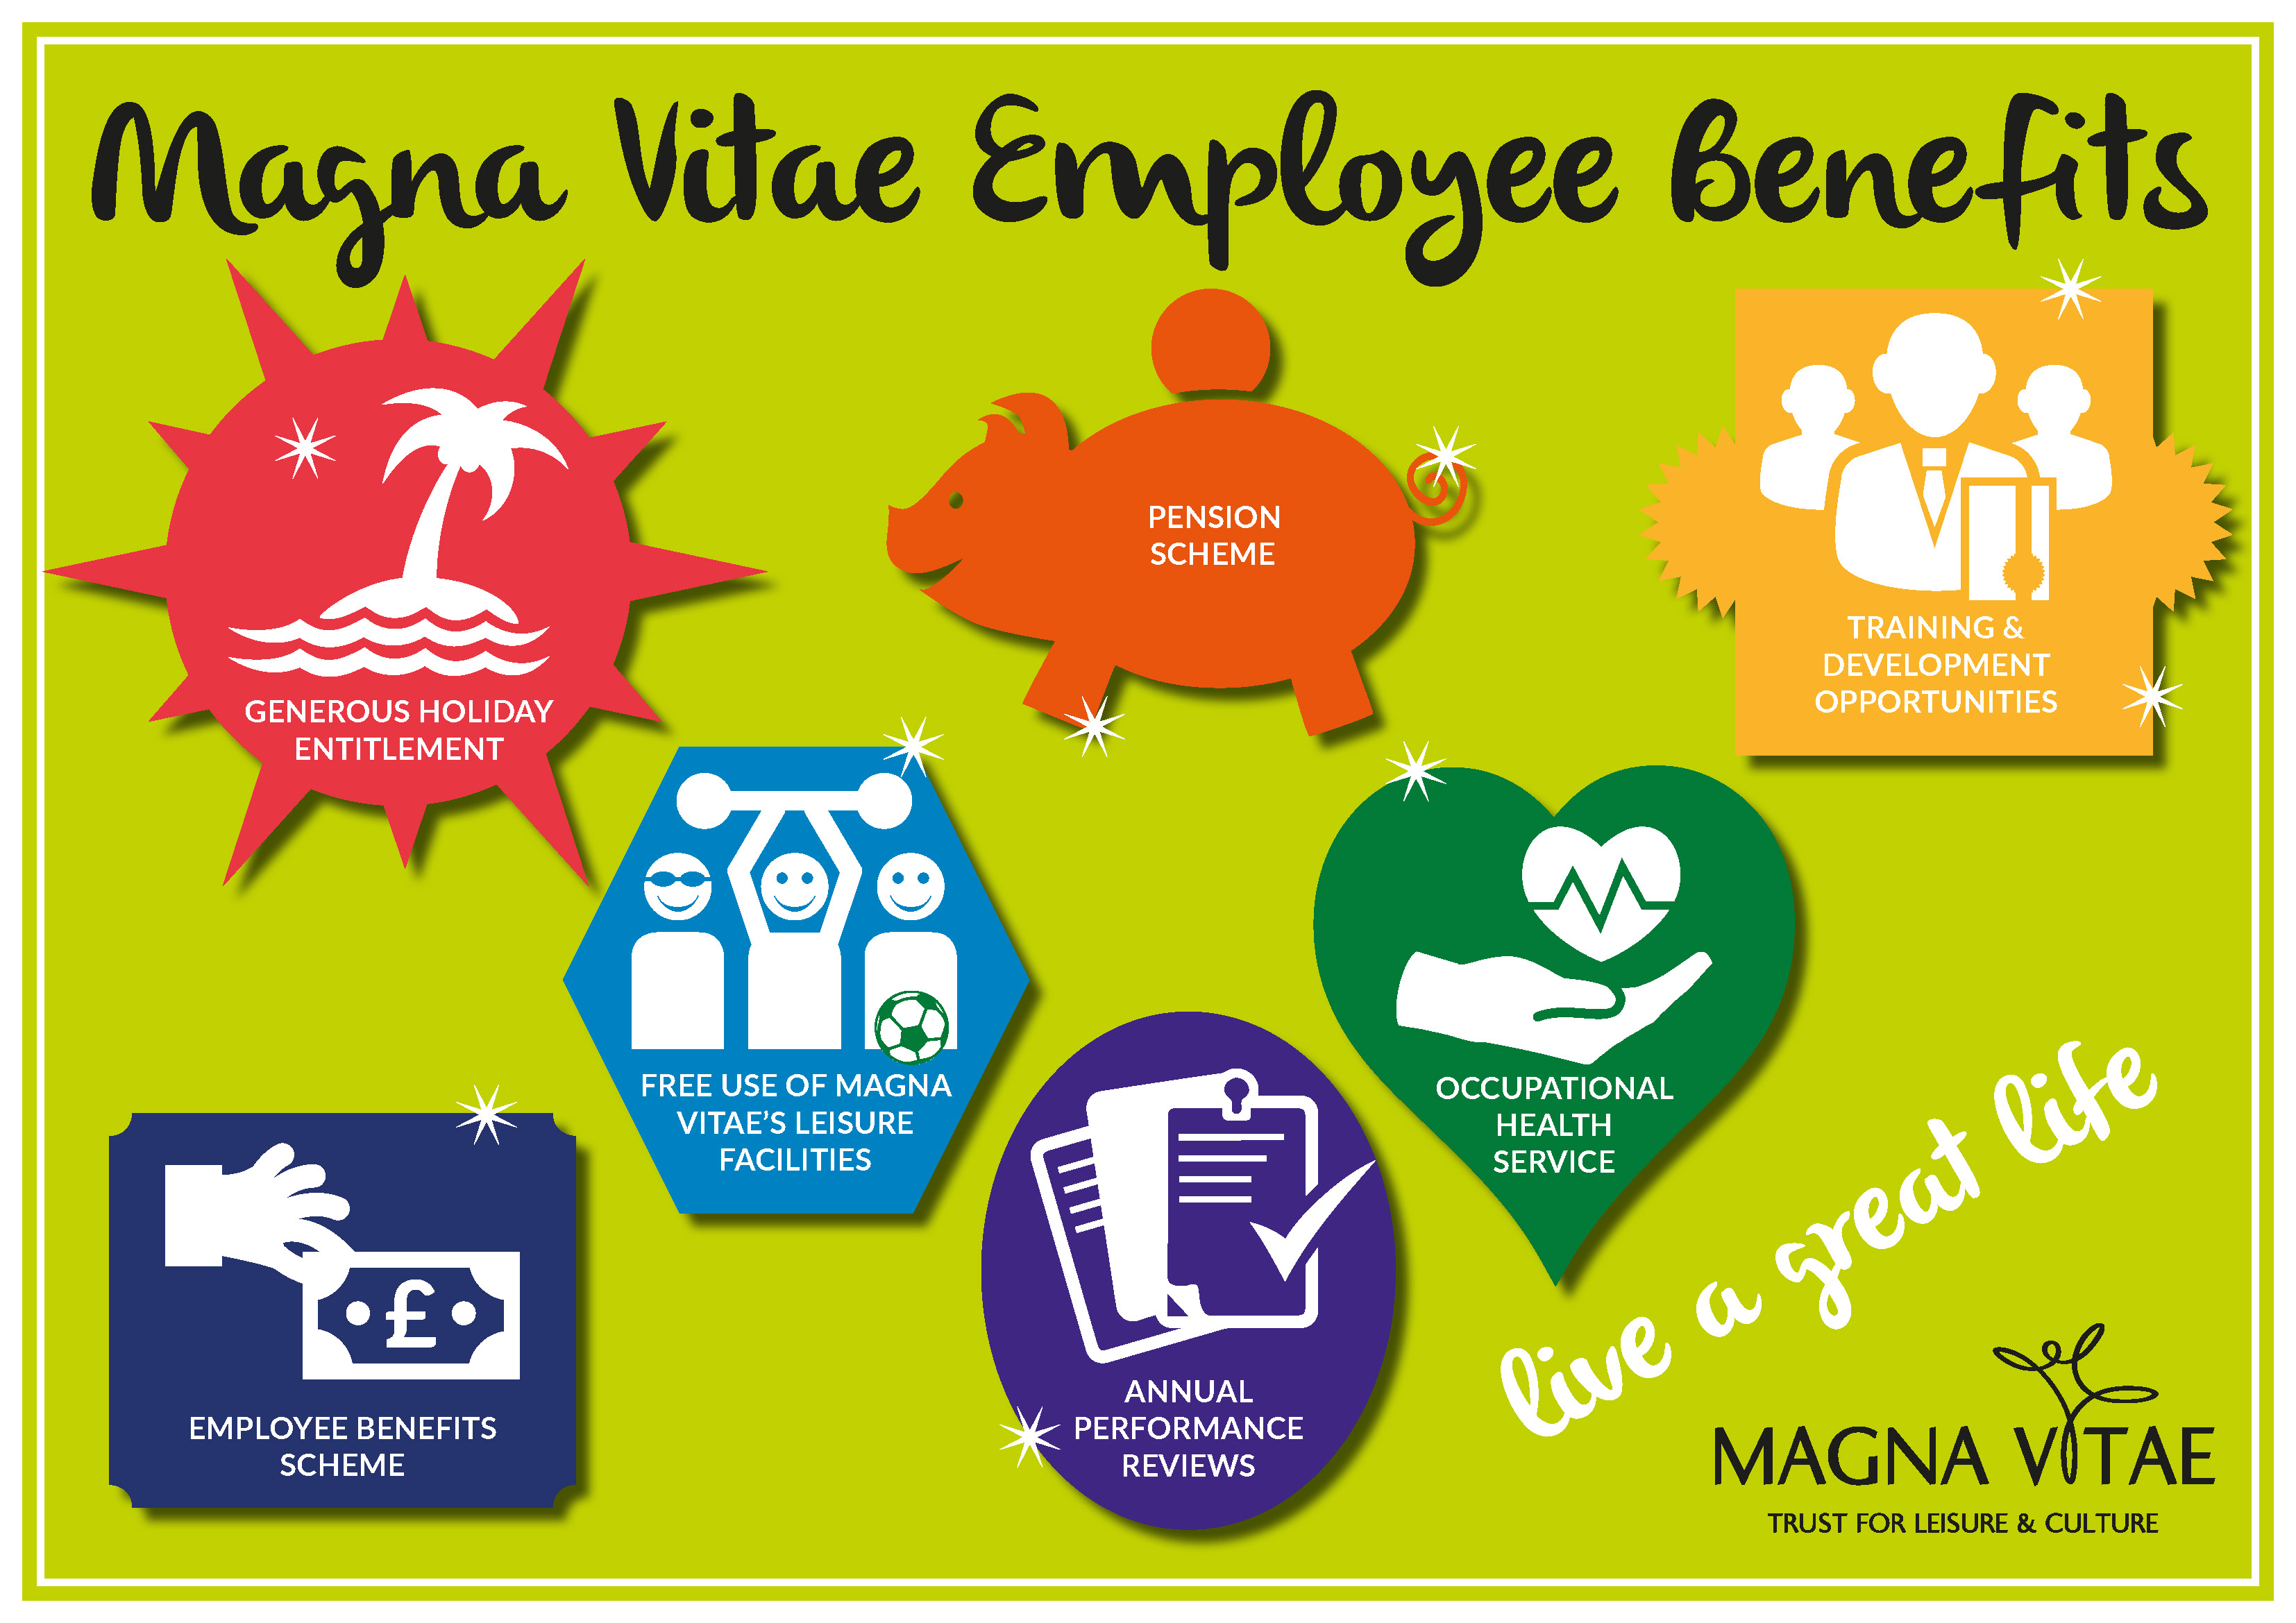 employee benefits and services for employees Professional services saving money on employee benefits is imperative in today's economy the cost of providing benefits continues to rise, and employees.